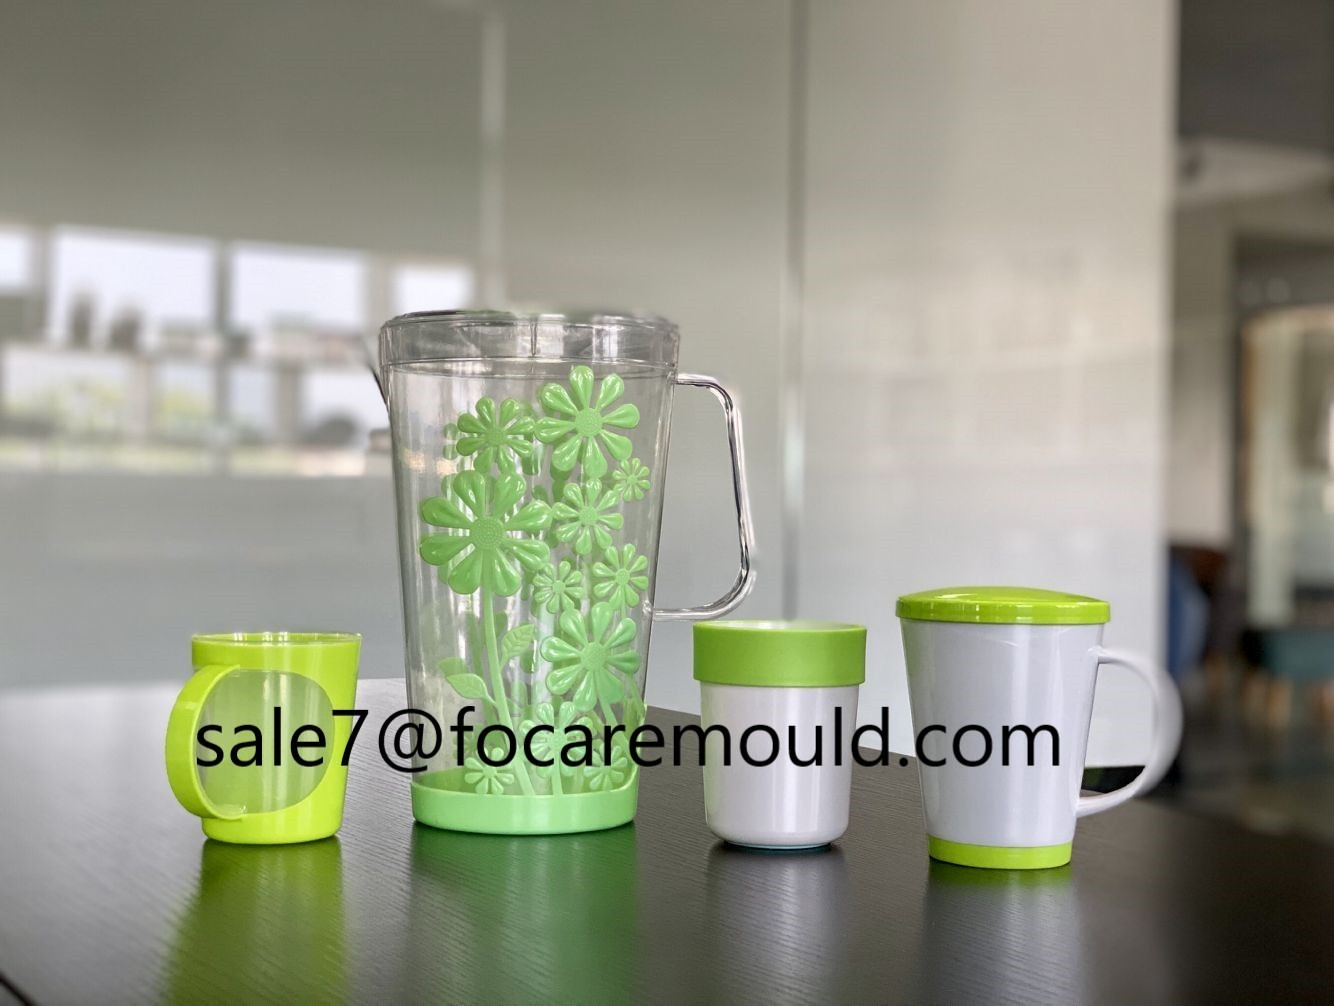 High quality Two-Color Flower Design Jug Plastic Injection Mould Quotes,China Two-Color Flower Design Jug Plastic Injection Mould Factory,Two-Color Flower Design Jug Plastic Injection Mould Purchasing